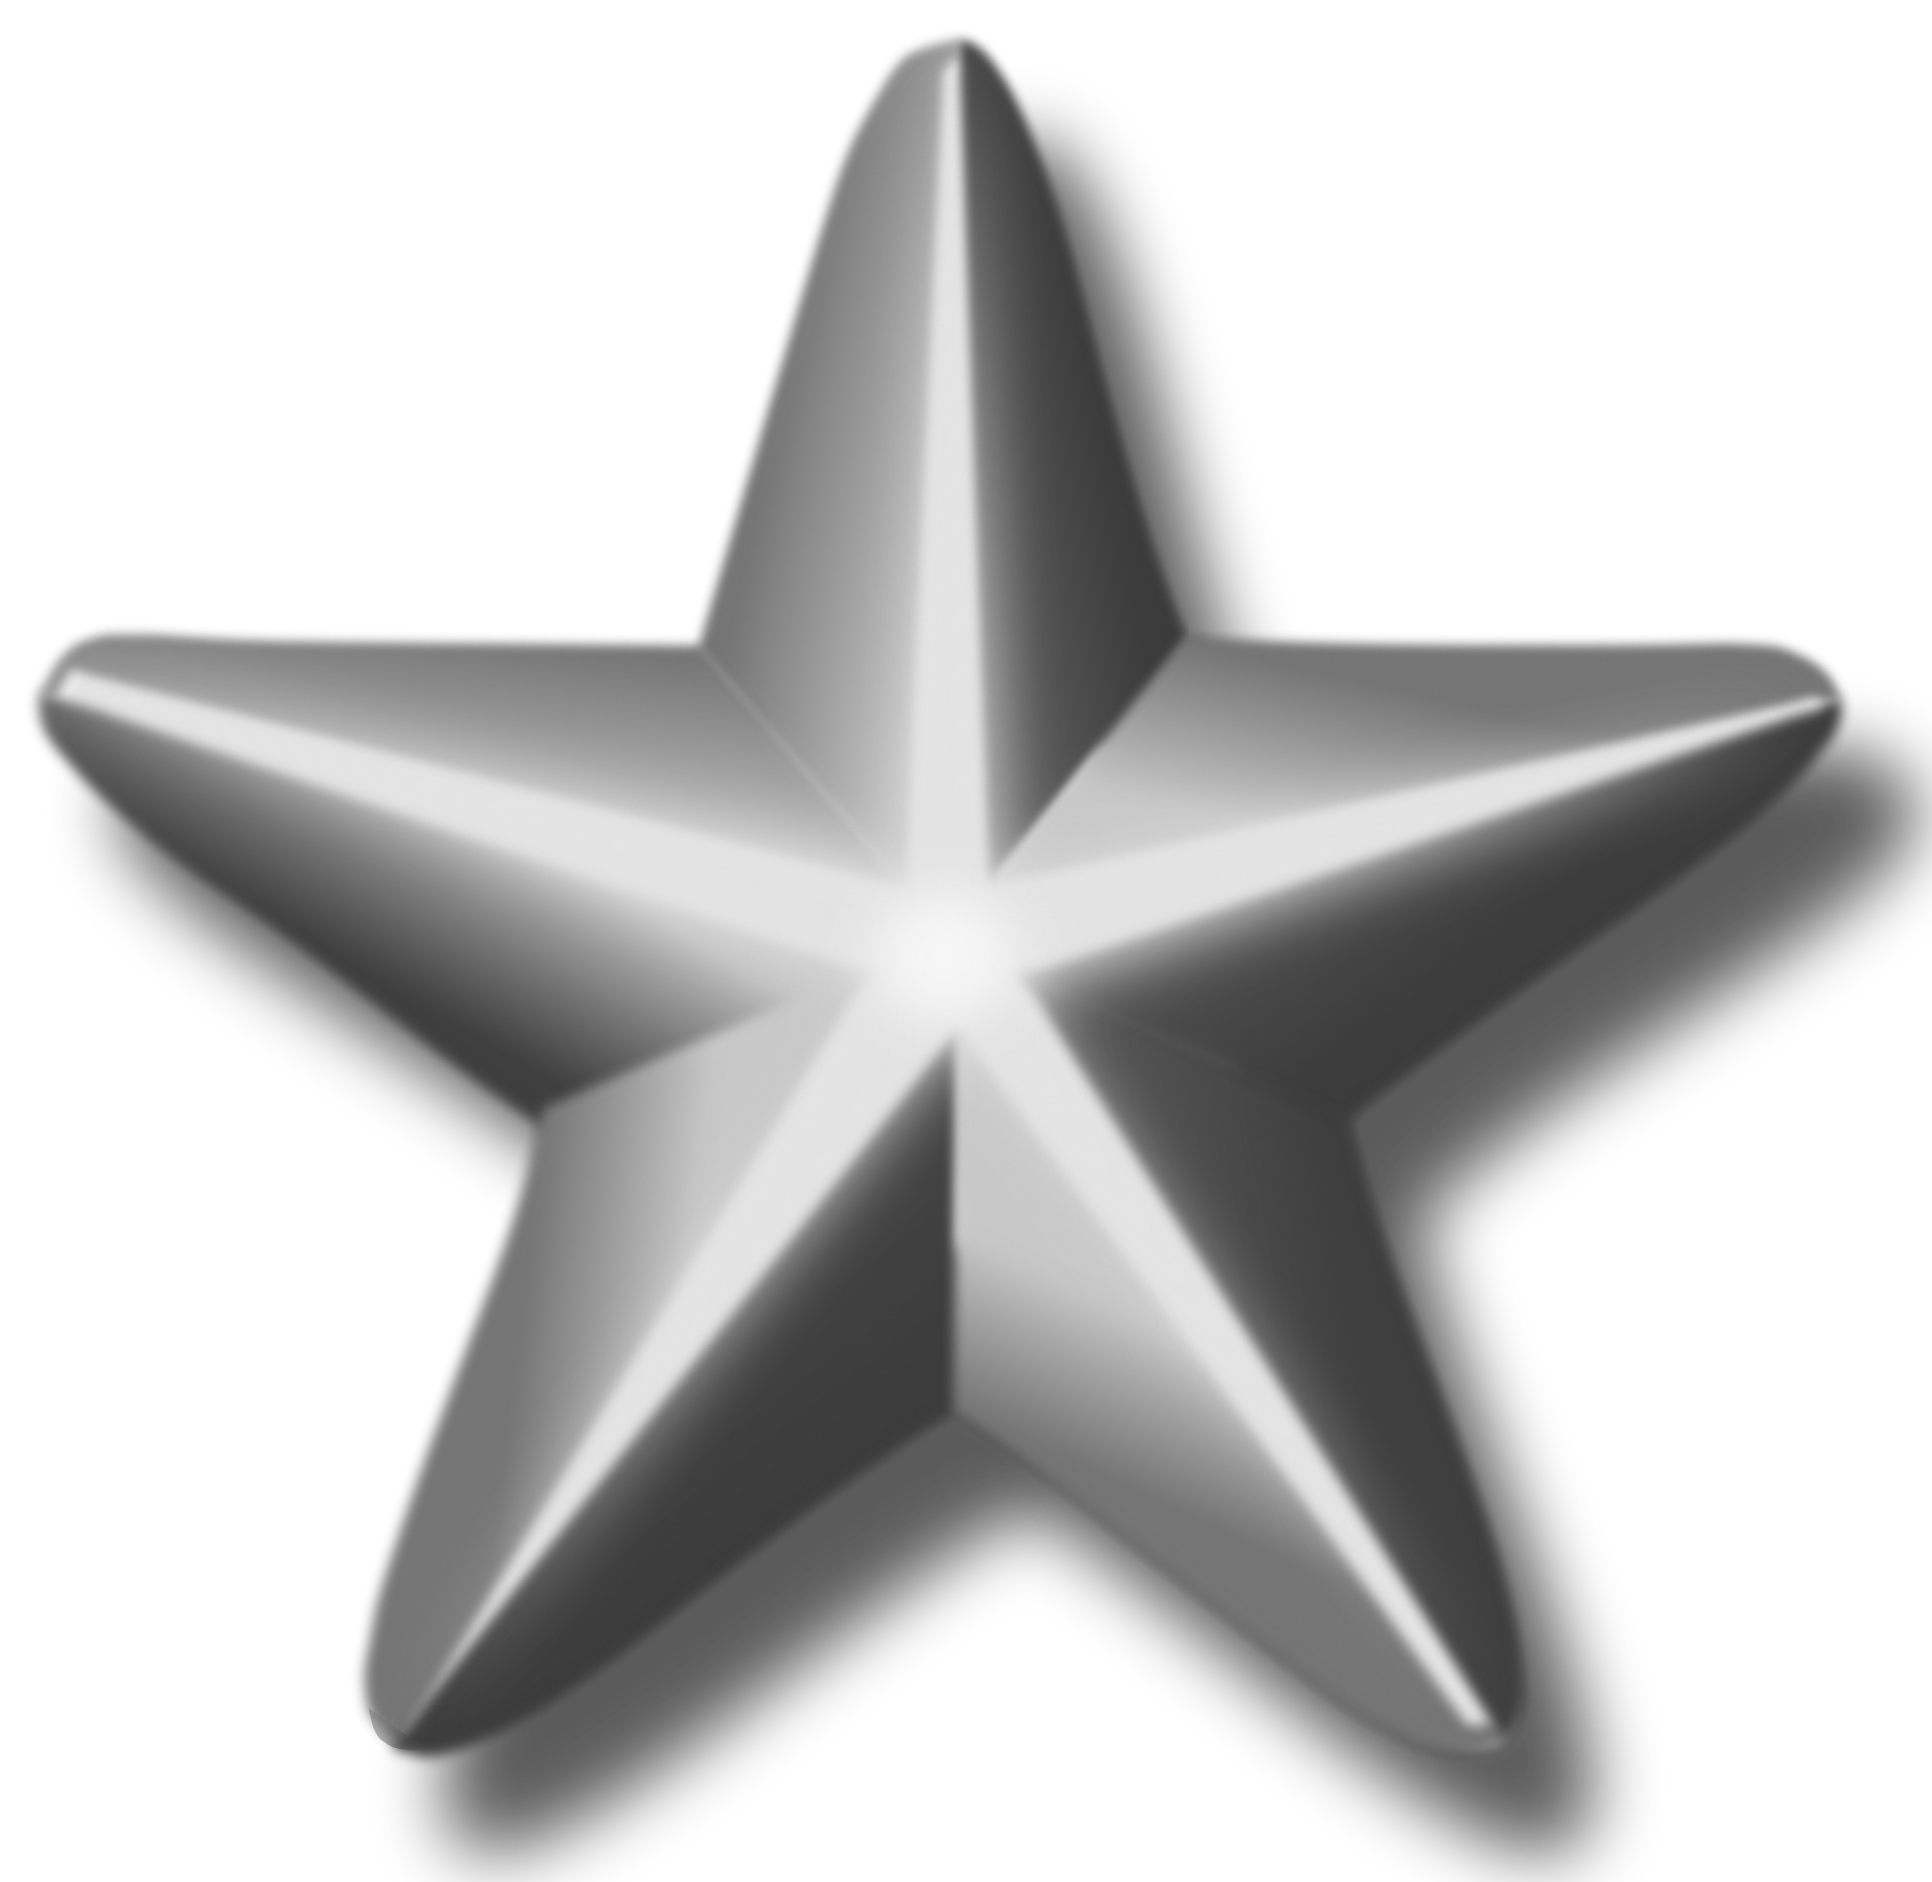 silver star clip art click for details image search bella silver stars ...